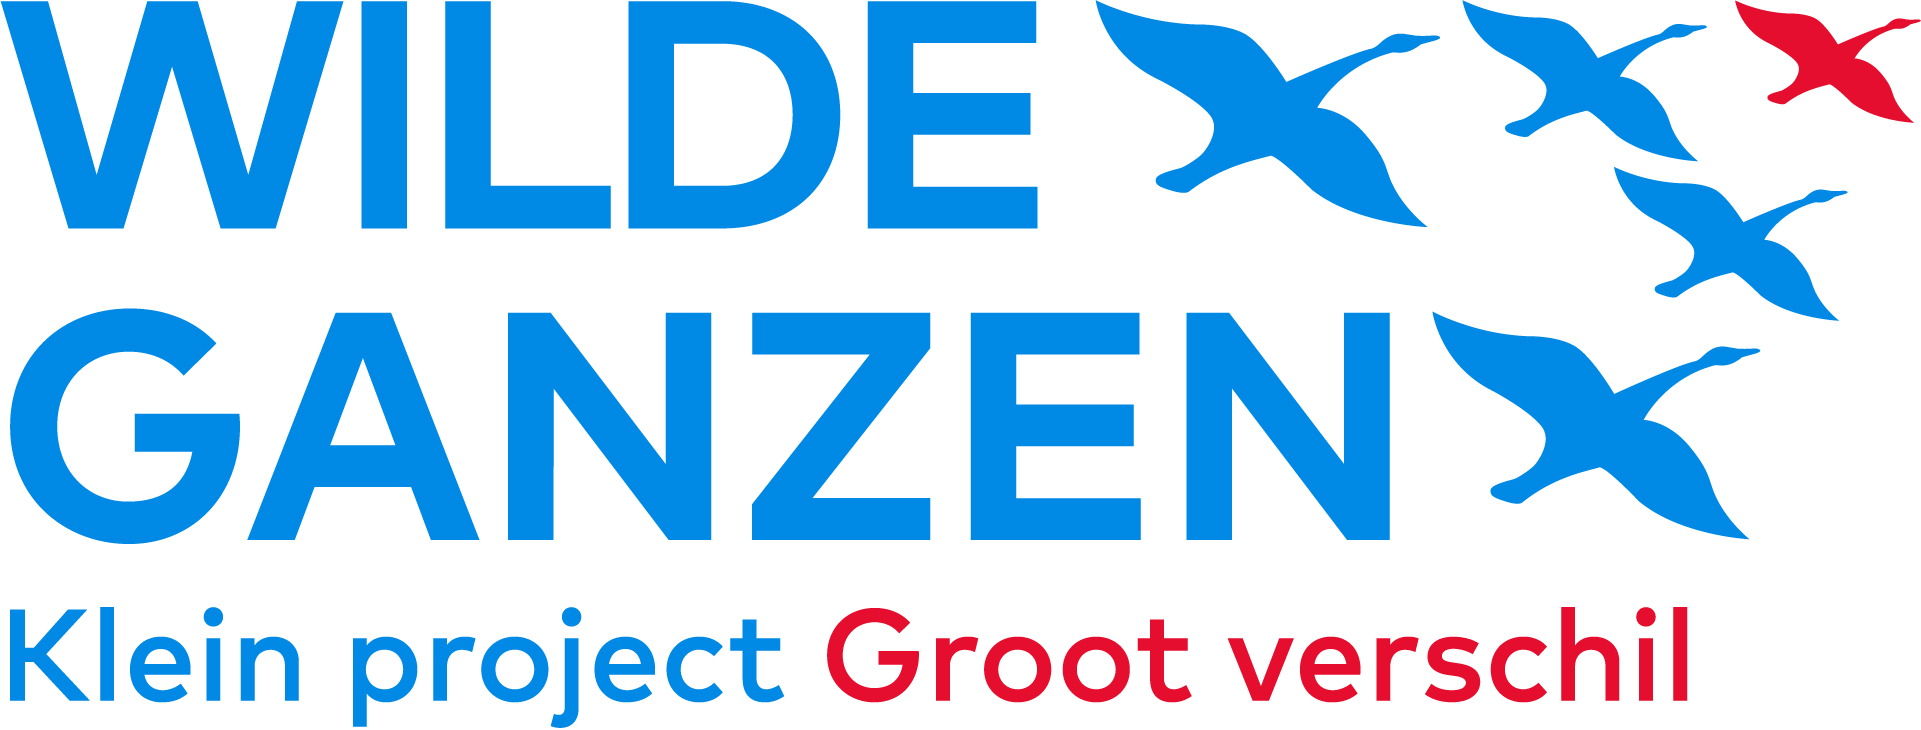 WILDE_GANZEN_LOGO_2019_Compact pay-off